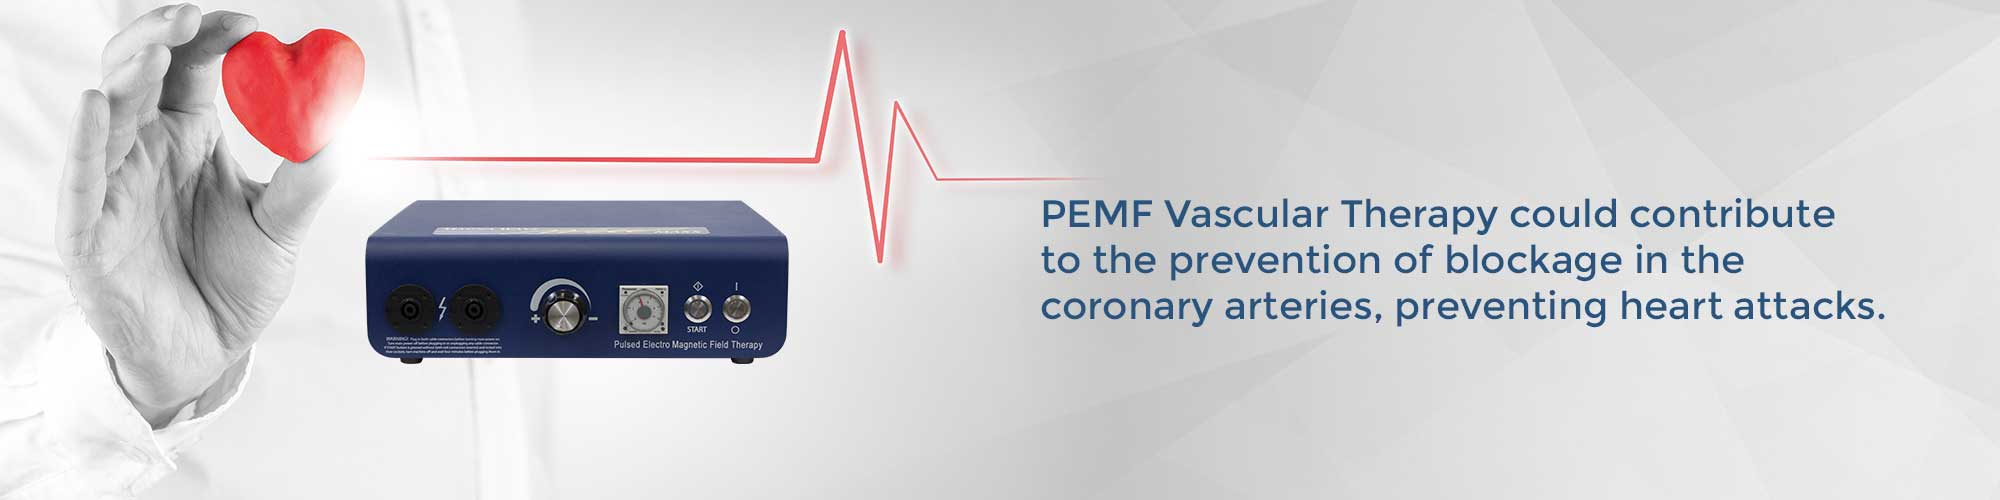 PEMF Vascular Therapy could contribute to the prevention of blockage in the coronary arteries, preventing heart attacks.